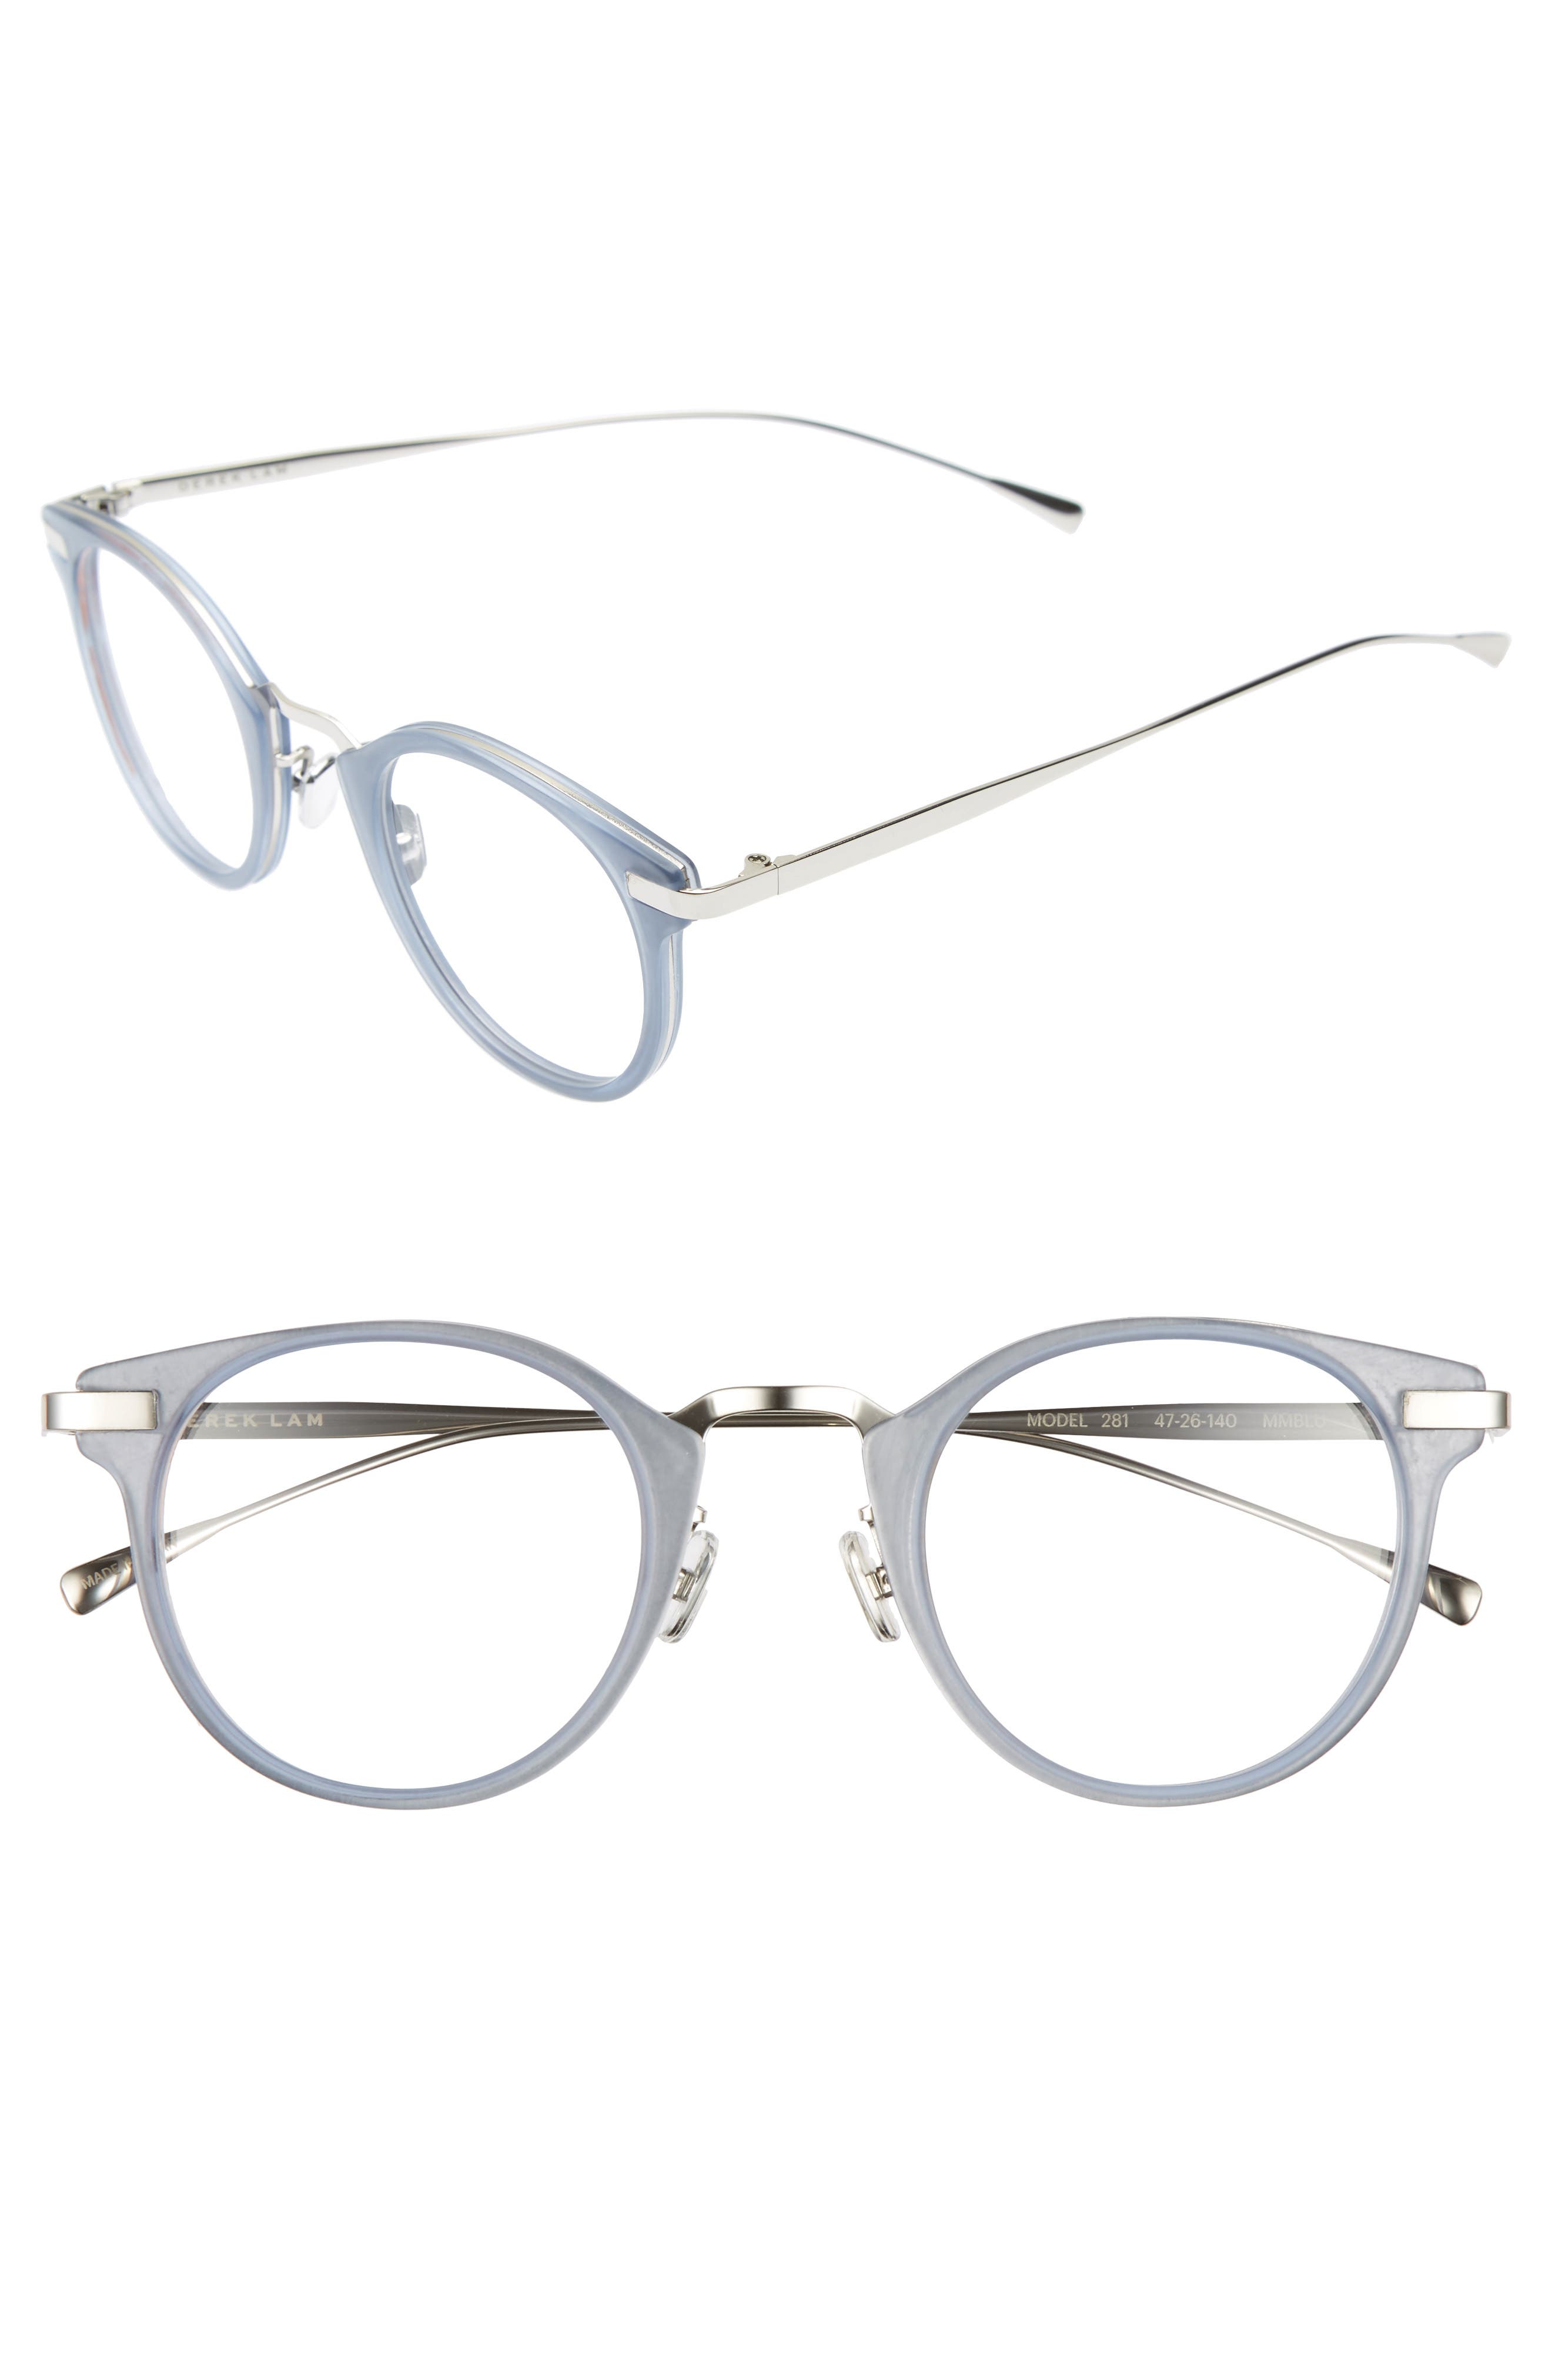 Main Image - Derek Lam 47mm Optical Glasses